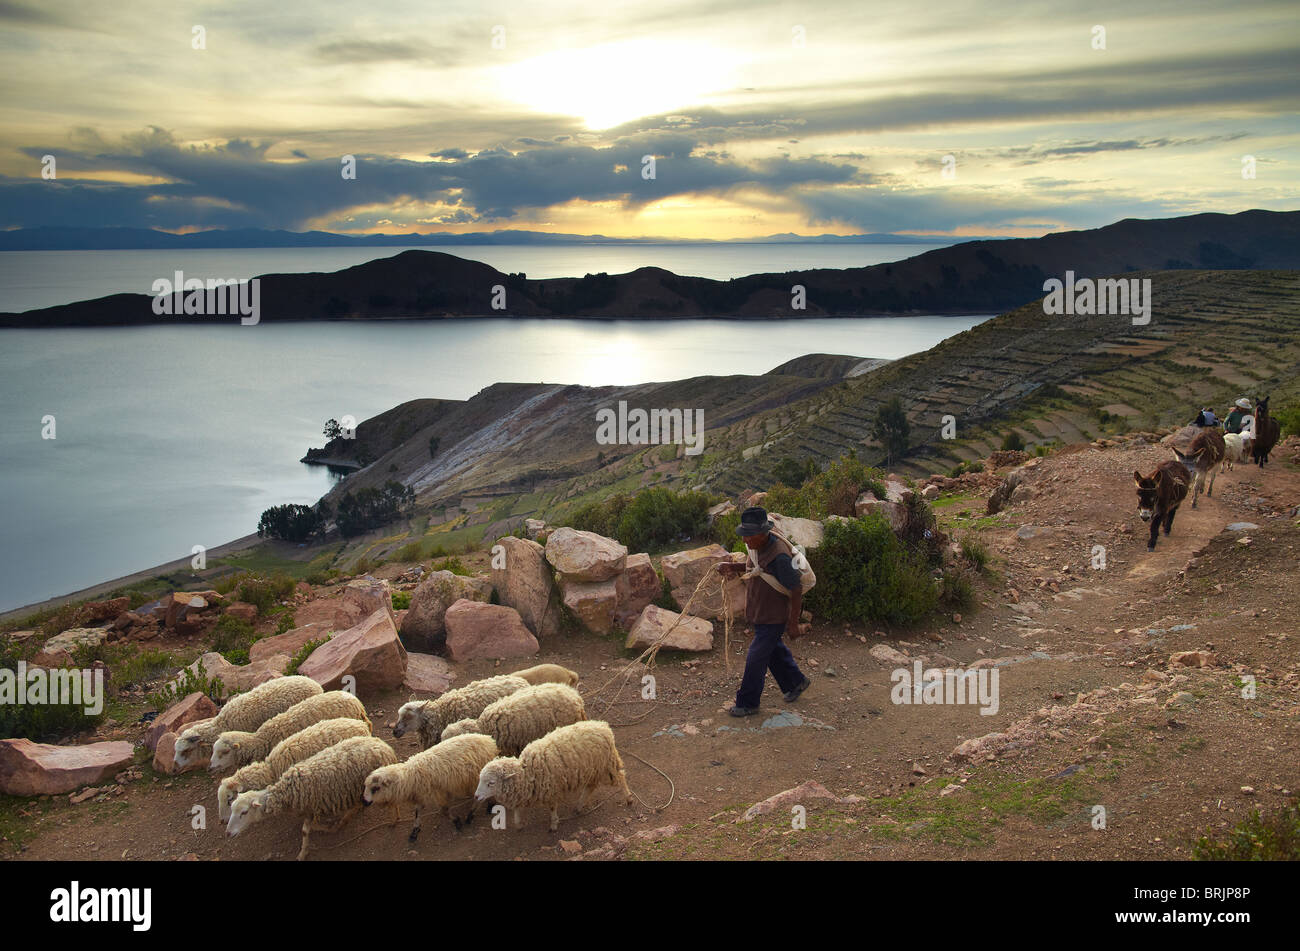 a farmer with his sheep on the Isla del Sol, Lake Titicaca, Bolivia - Stock Image